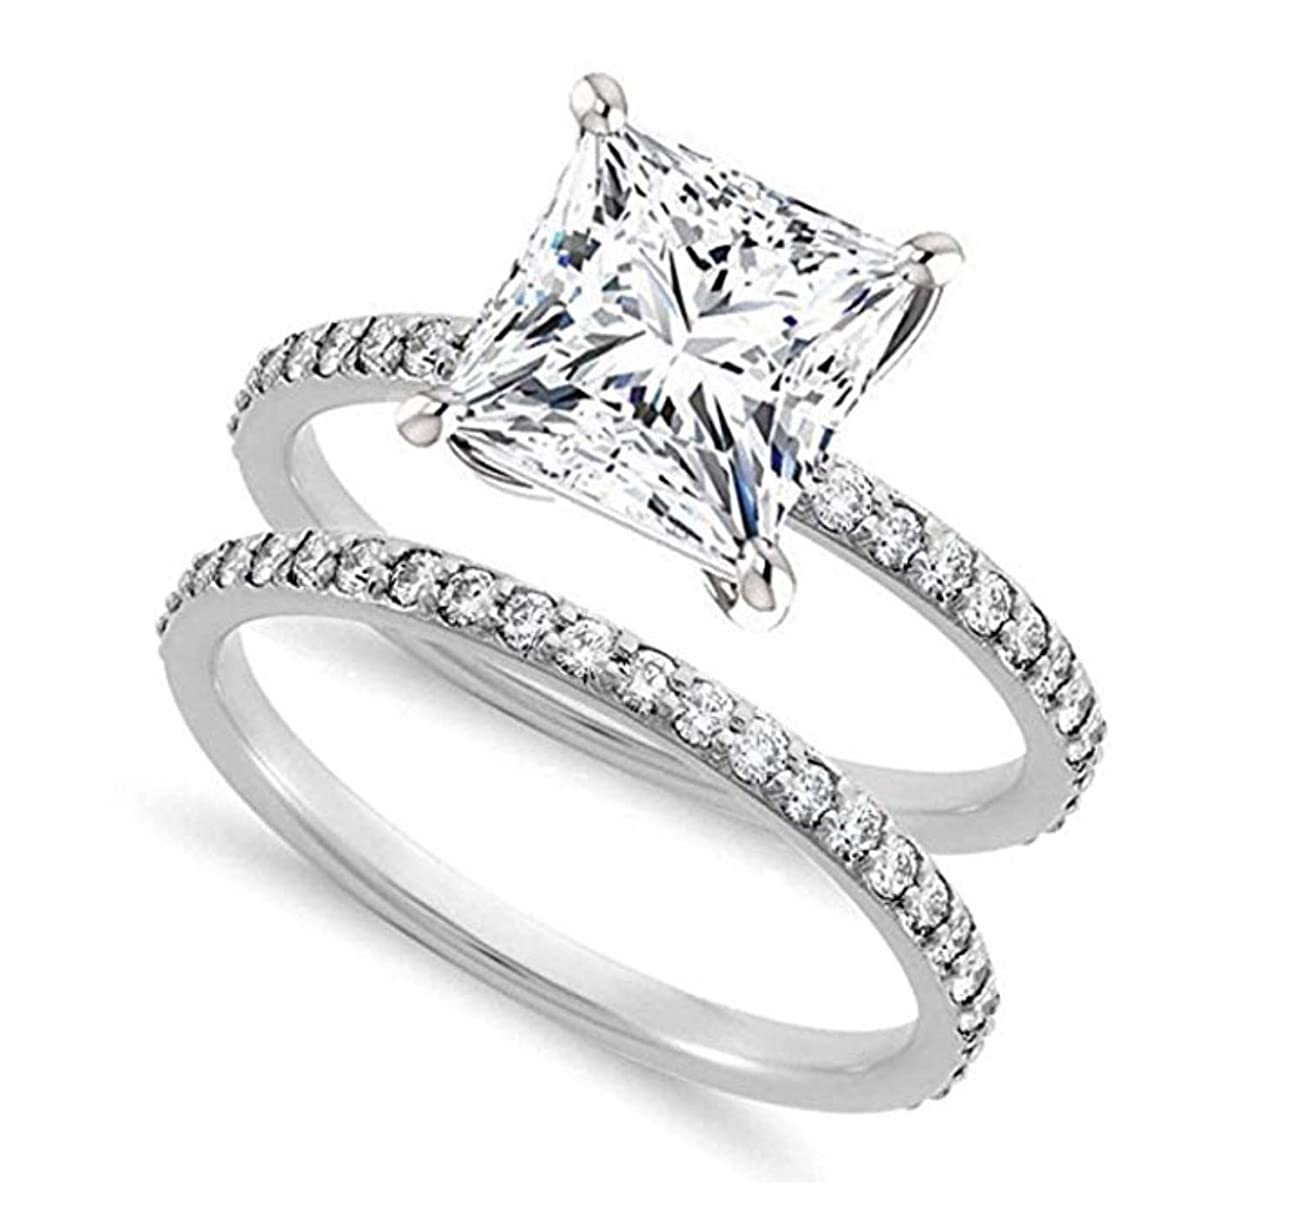 Venetia Realistic Supreme 1.5 Carat Princess Cut NSCD Simulated Diamond Ring Band Set 925 Silver Platinum Plate